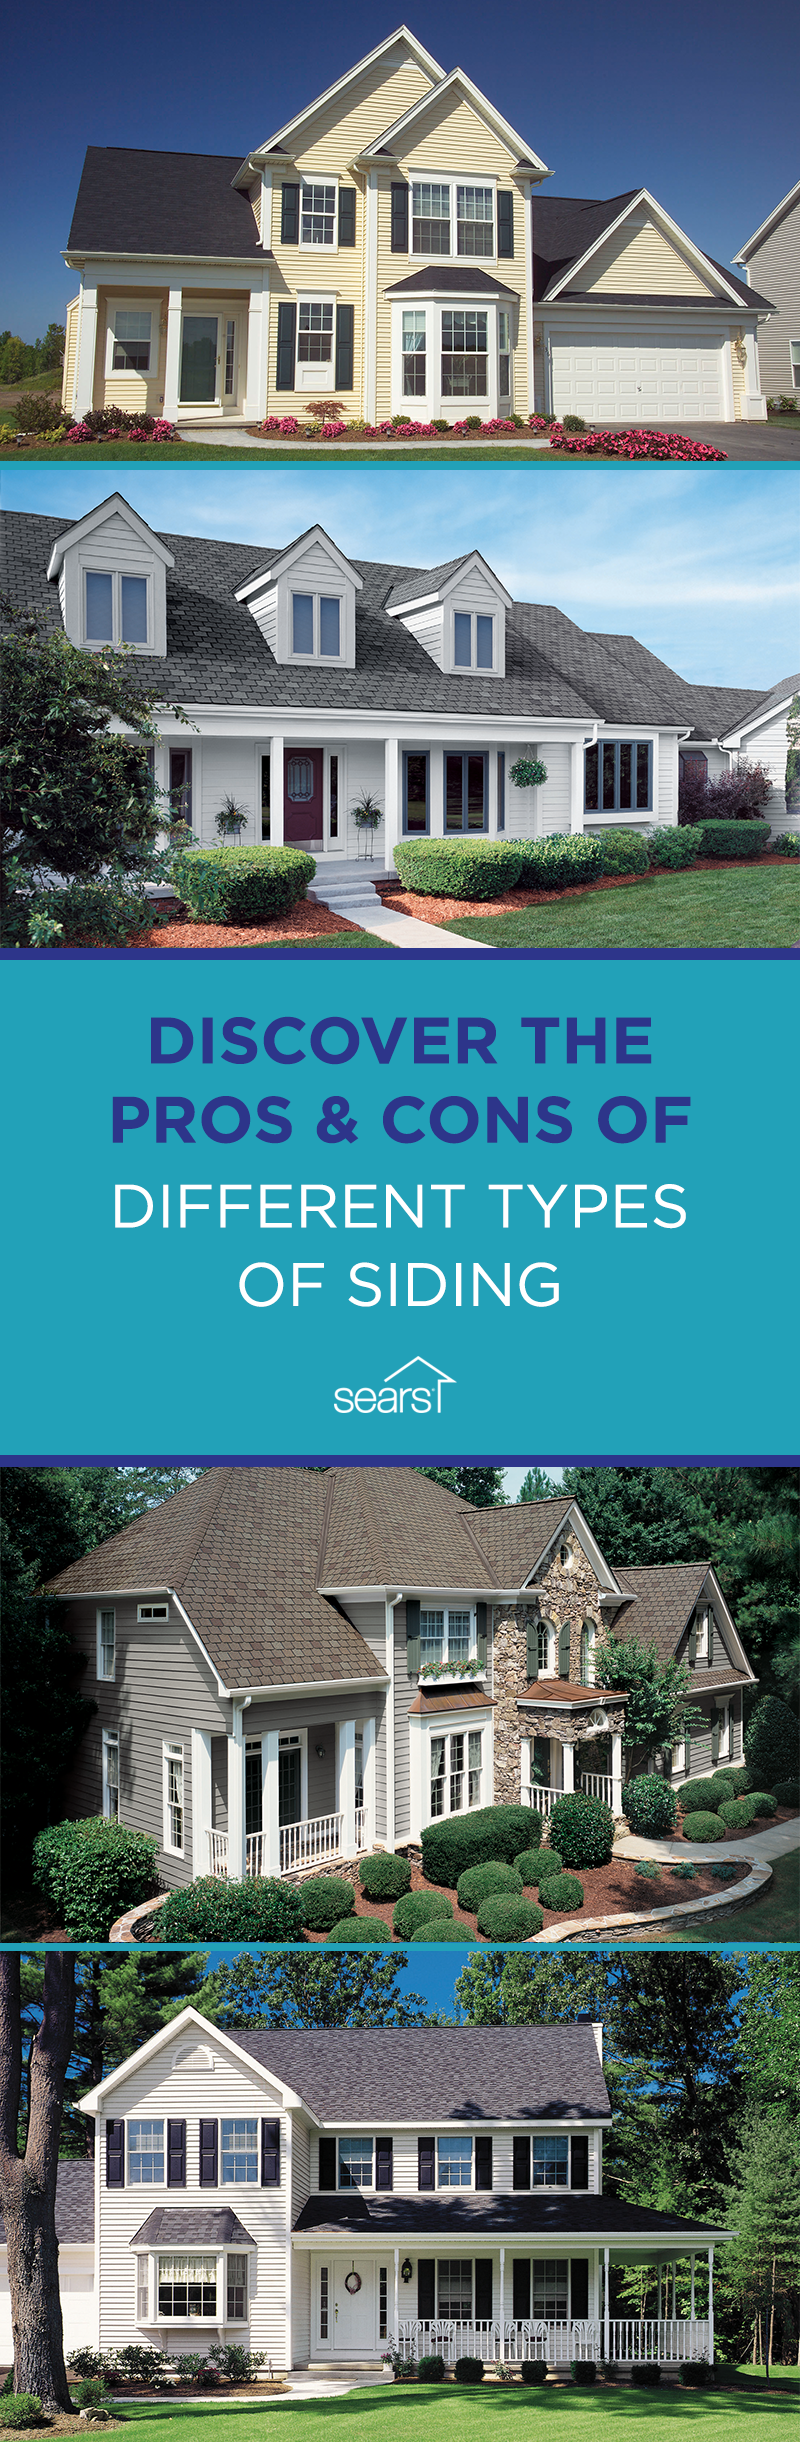 What Kind Of Siding Right For Your Home With So Many Different Options For Siding It Can Be Hard To Choose Which Is Right Types Of Siding Brick Siding House Siding